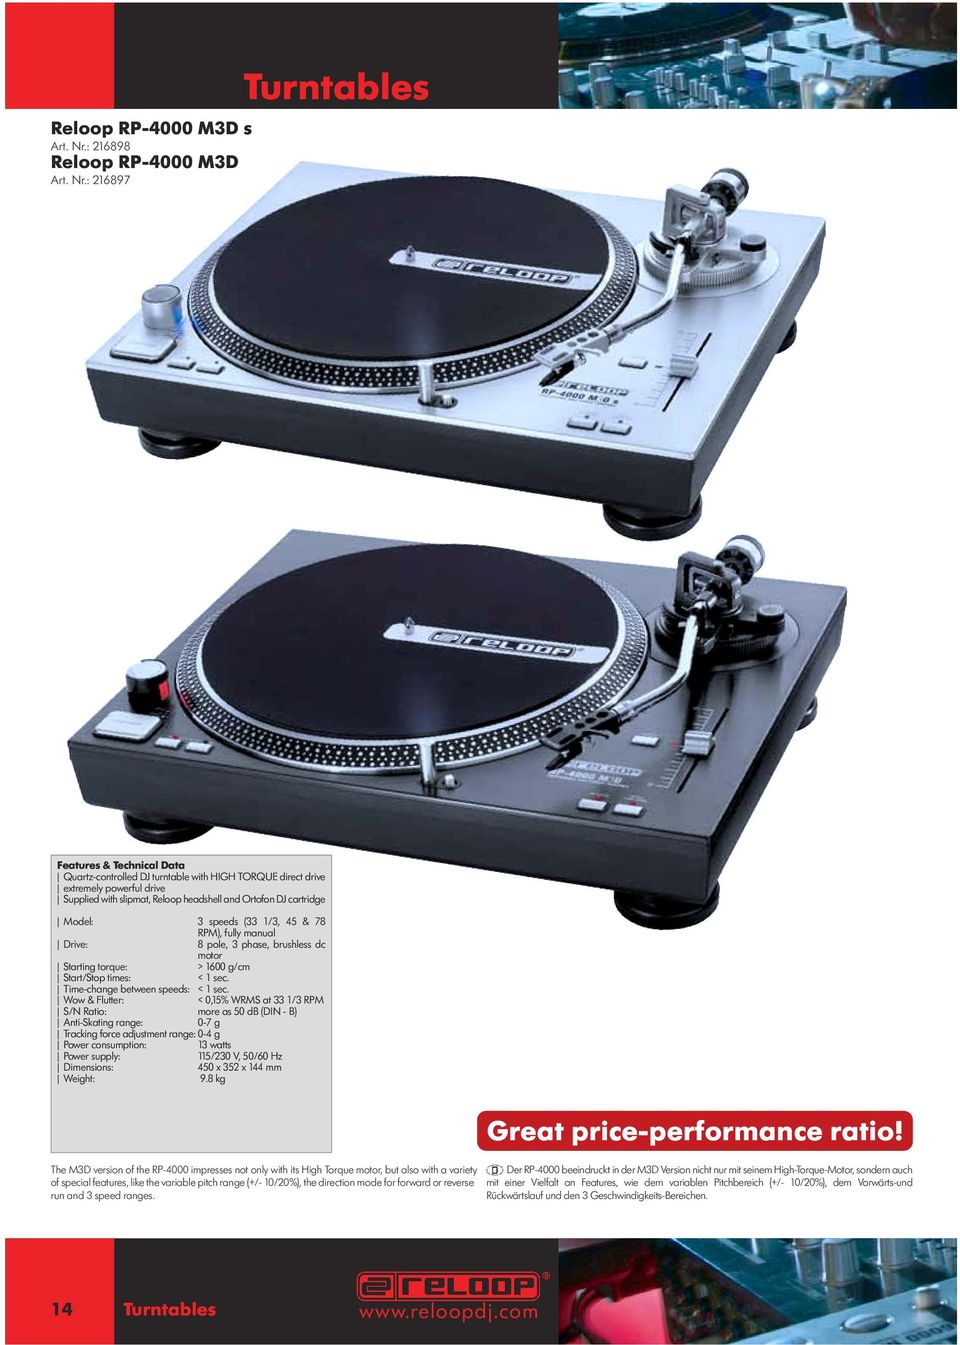 : 216897 Turntables Quartz-controlled DJ turntable with HIGH TORQUE direct drive extremely powerful drive Supplied with slipmat, Reloop headshell and Ortofon DJ cartridge Model: 3 speeds (33 1/3, 45